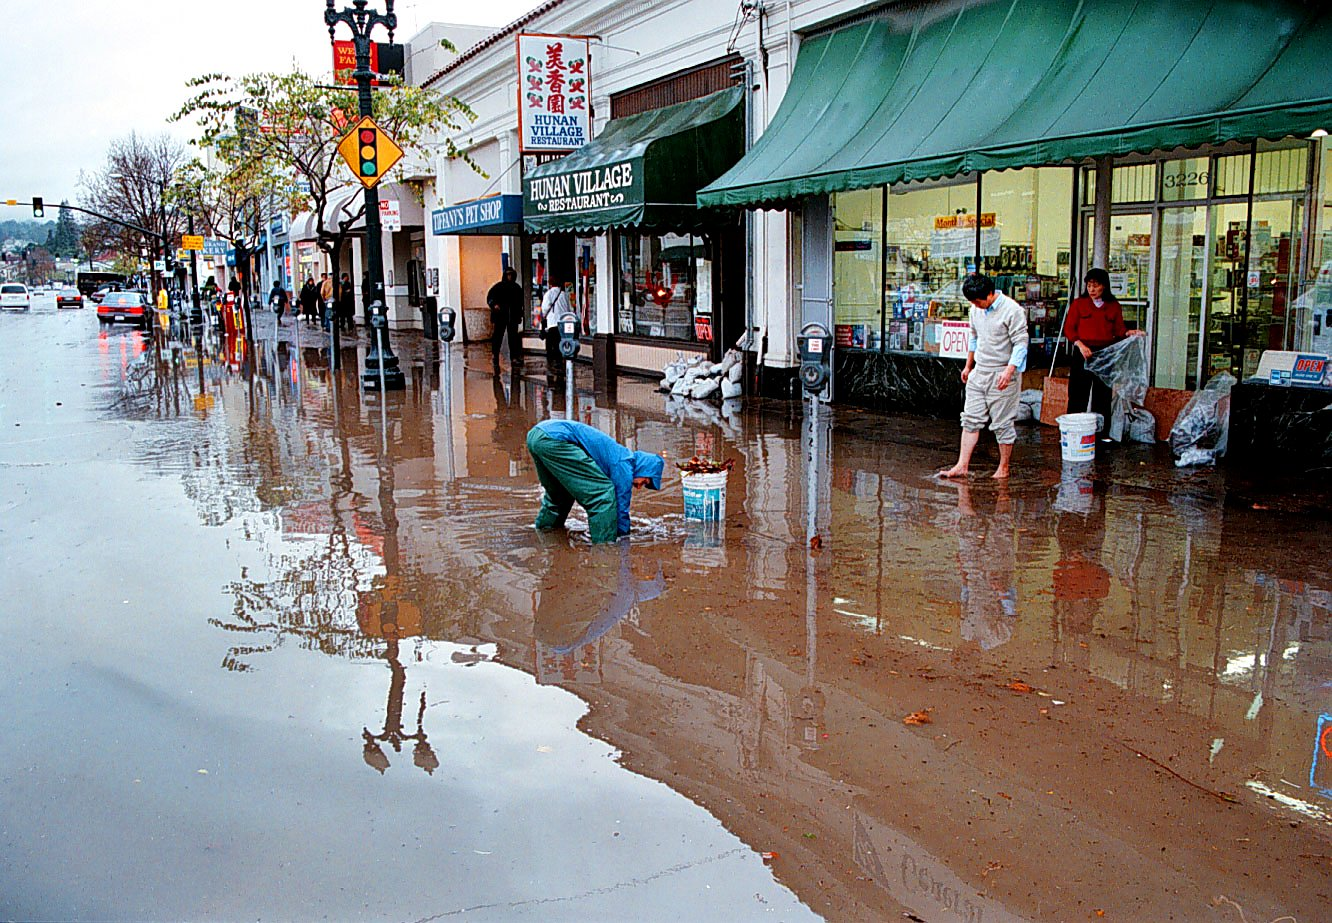 Historic image from 1997-98 El Nino - Grand Avenue flooded